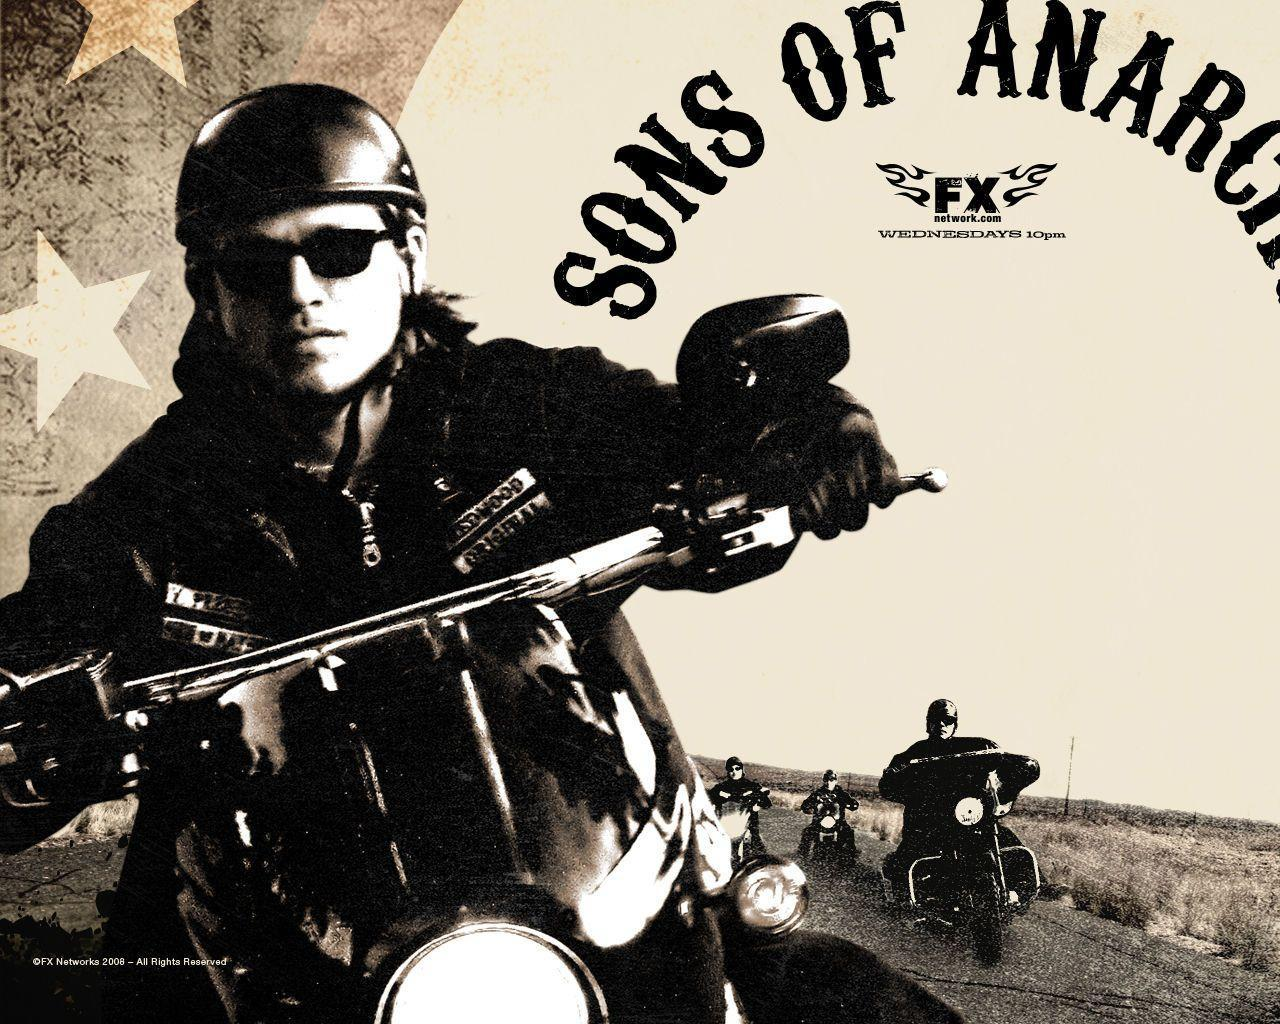 Sons of anarchy wallpapers wallpaper cave sons of anarchy picture wallpaper desktop backgrounds free voltagebd Choice Image